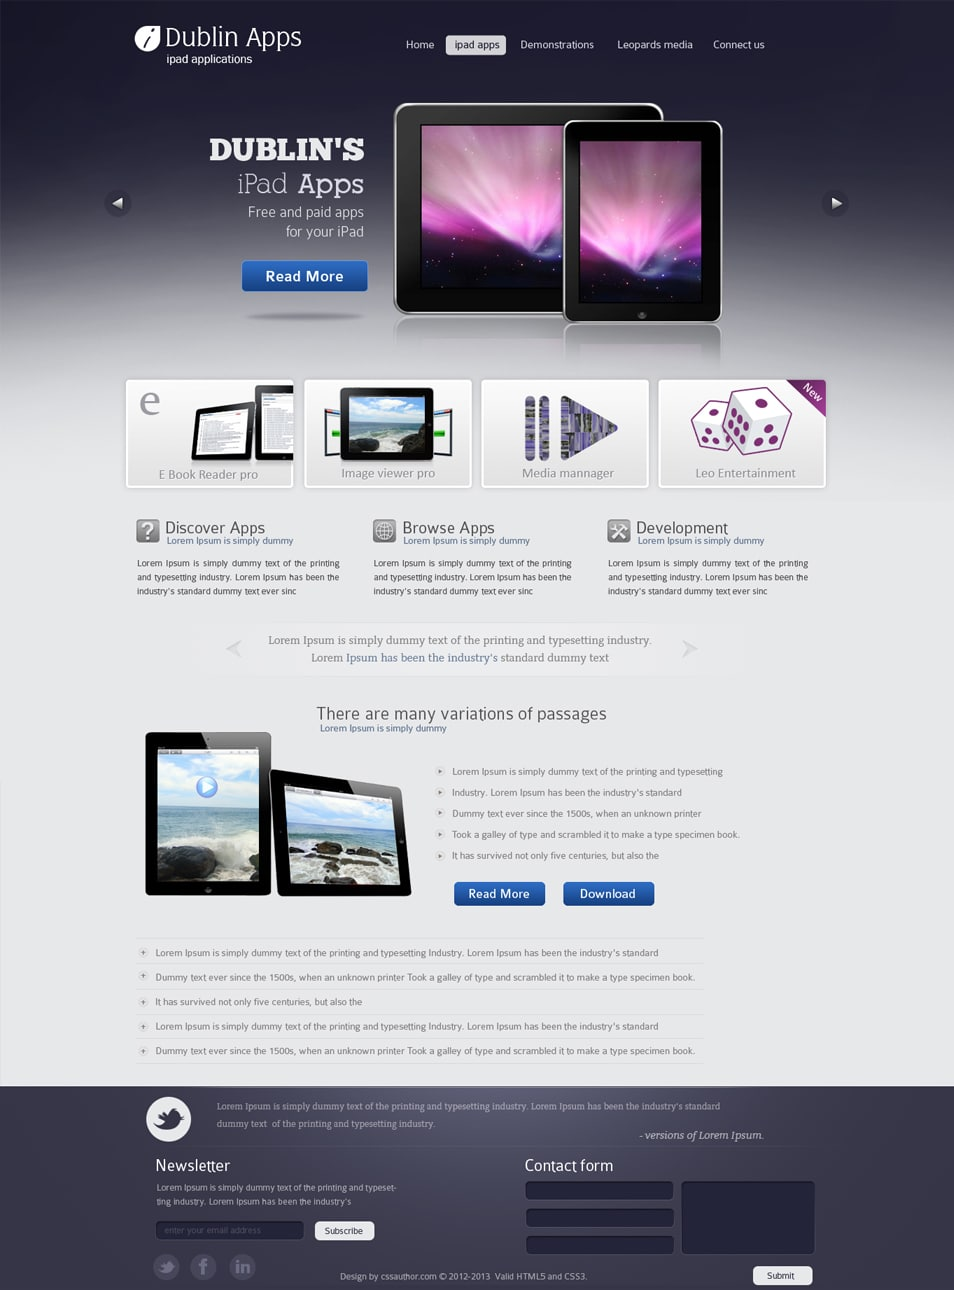 Professional Website Design Template for iPad and iPhone Applications